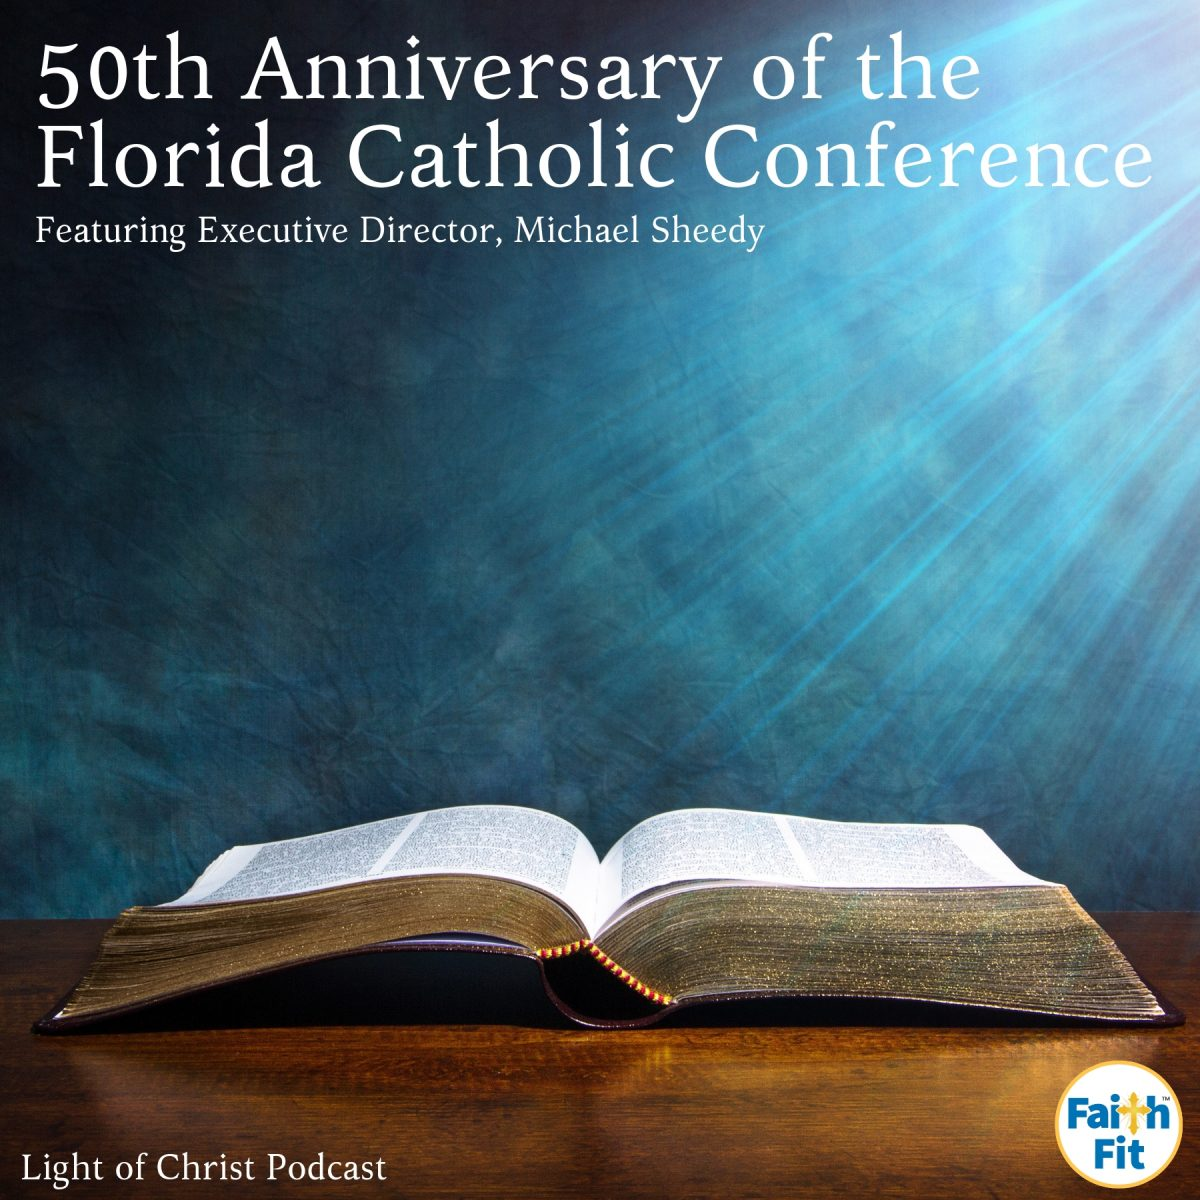 #10: The 50th Anniversary of the Florida Catholic Conference (FCC) with Michael Sheedy